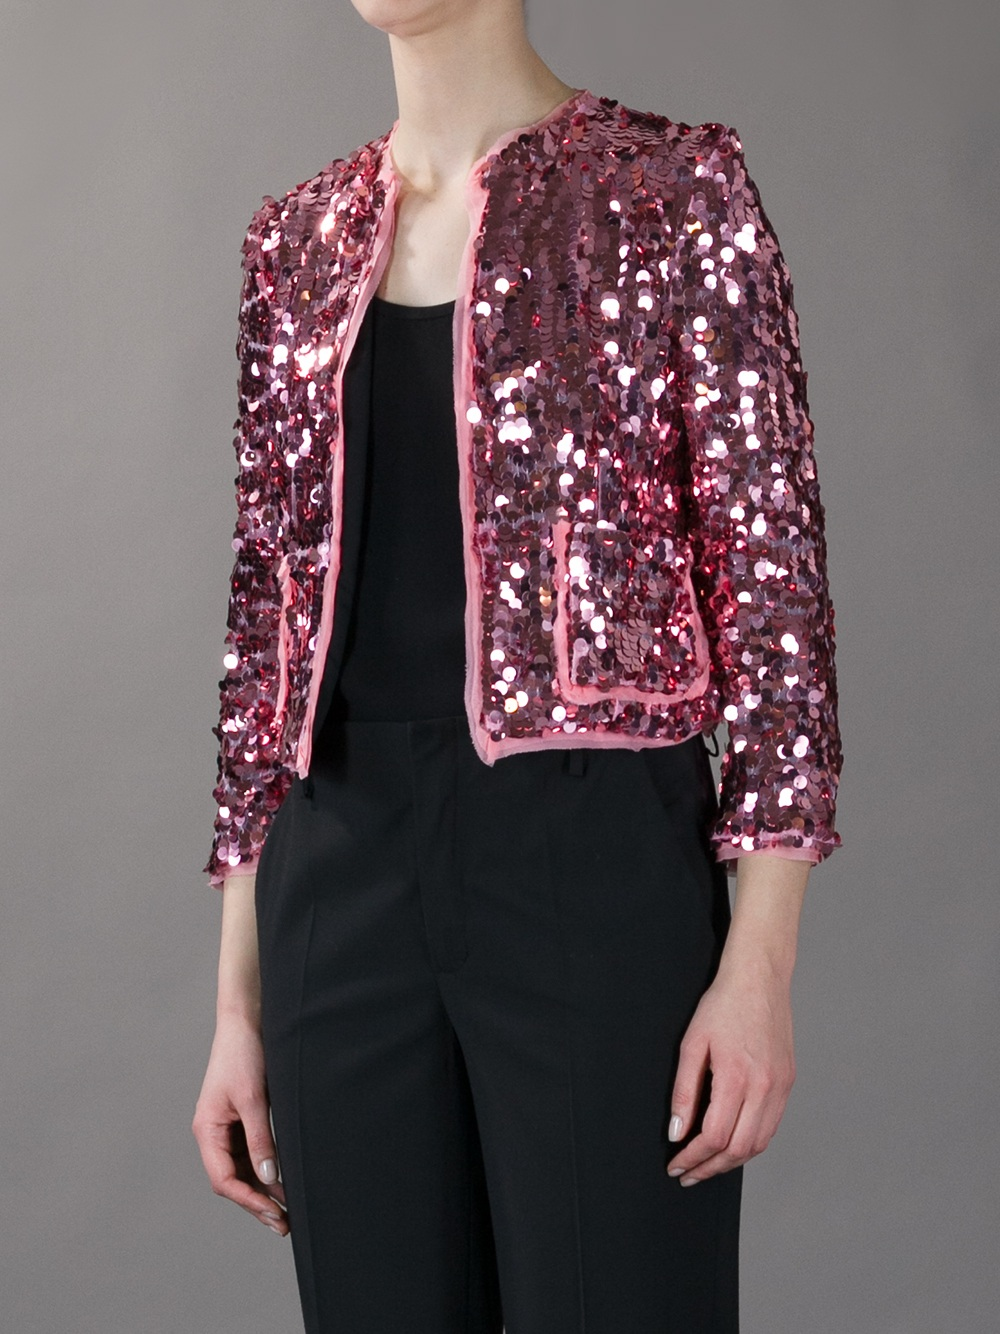 Marco Bologna Cropped Sequin Jacket In Pink Lyst